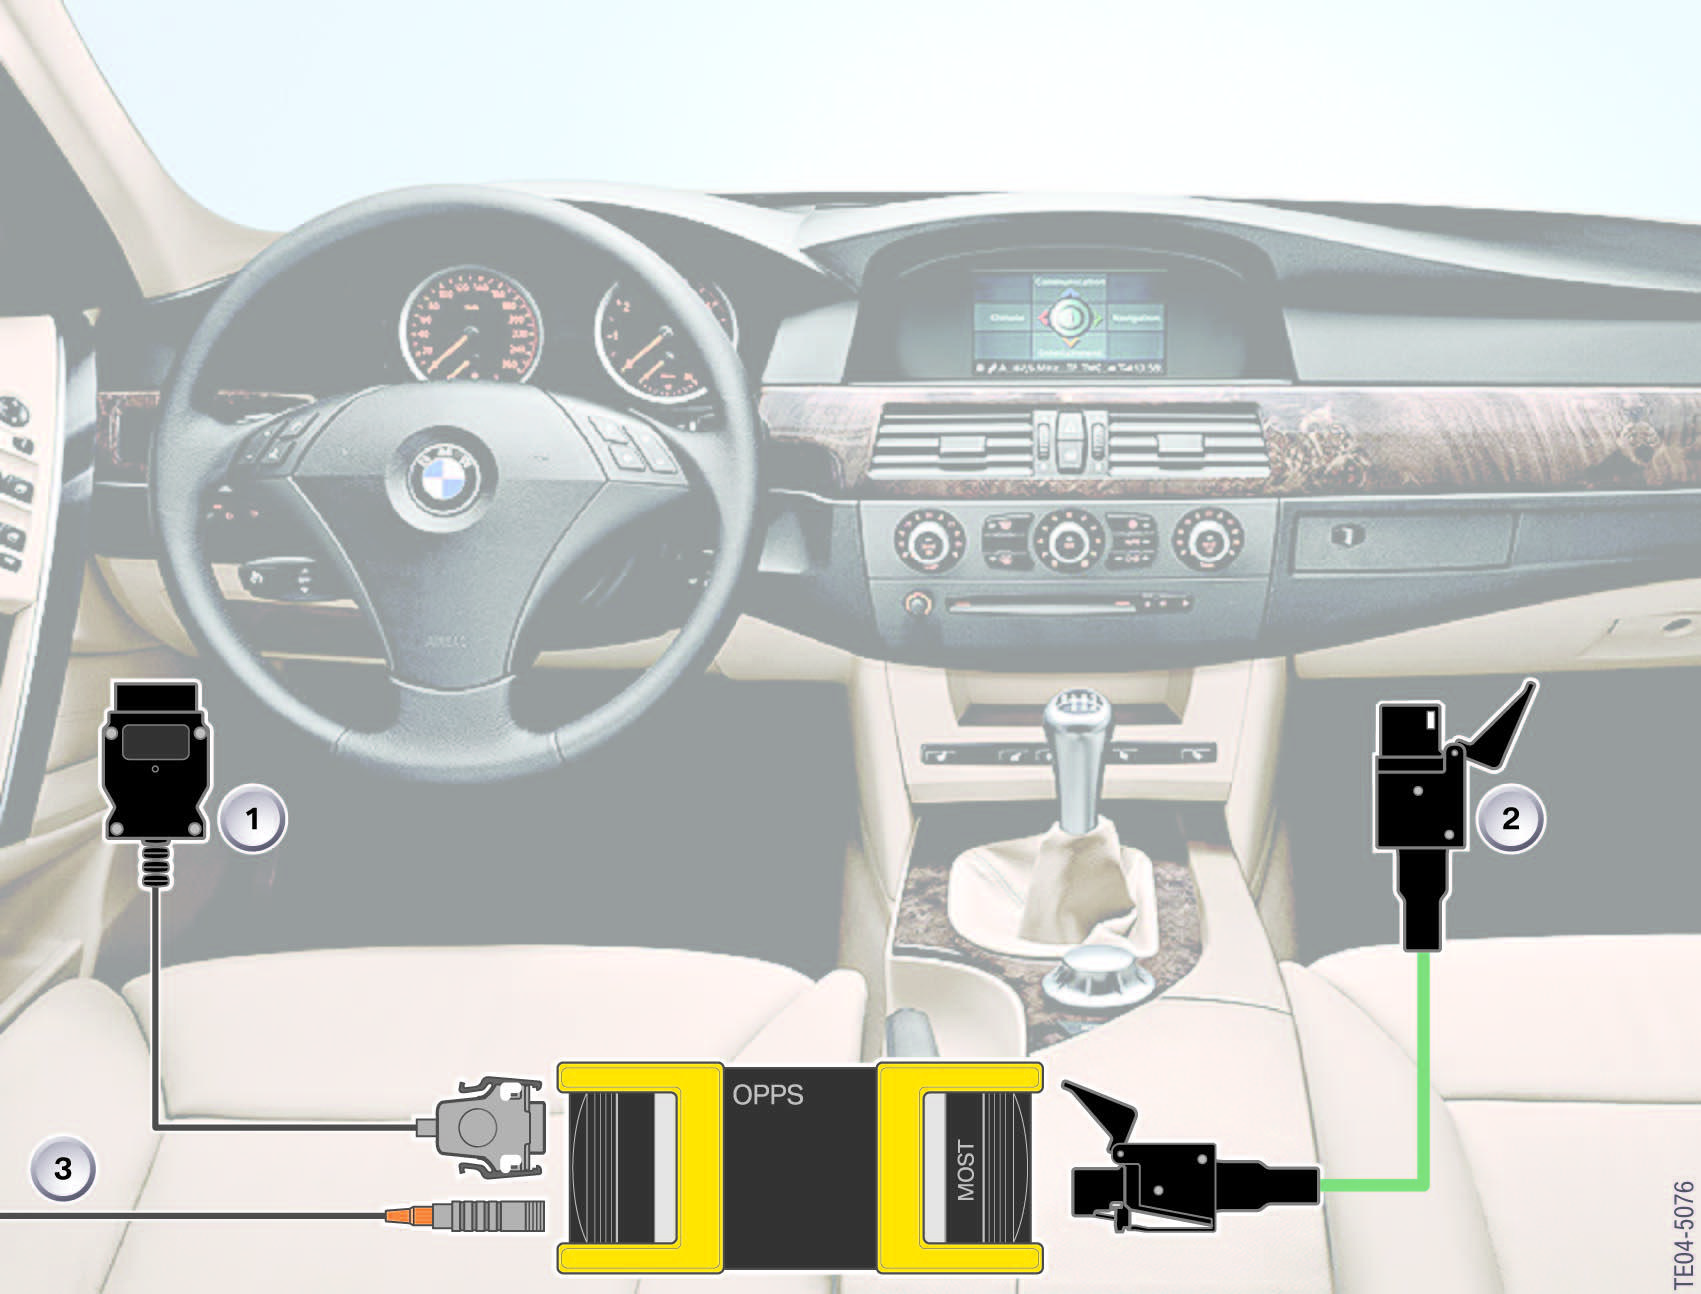 Diagnostic-BMW-Programmation-multicanaux.jpg